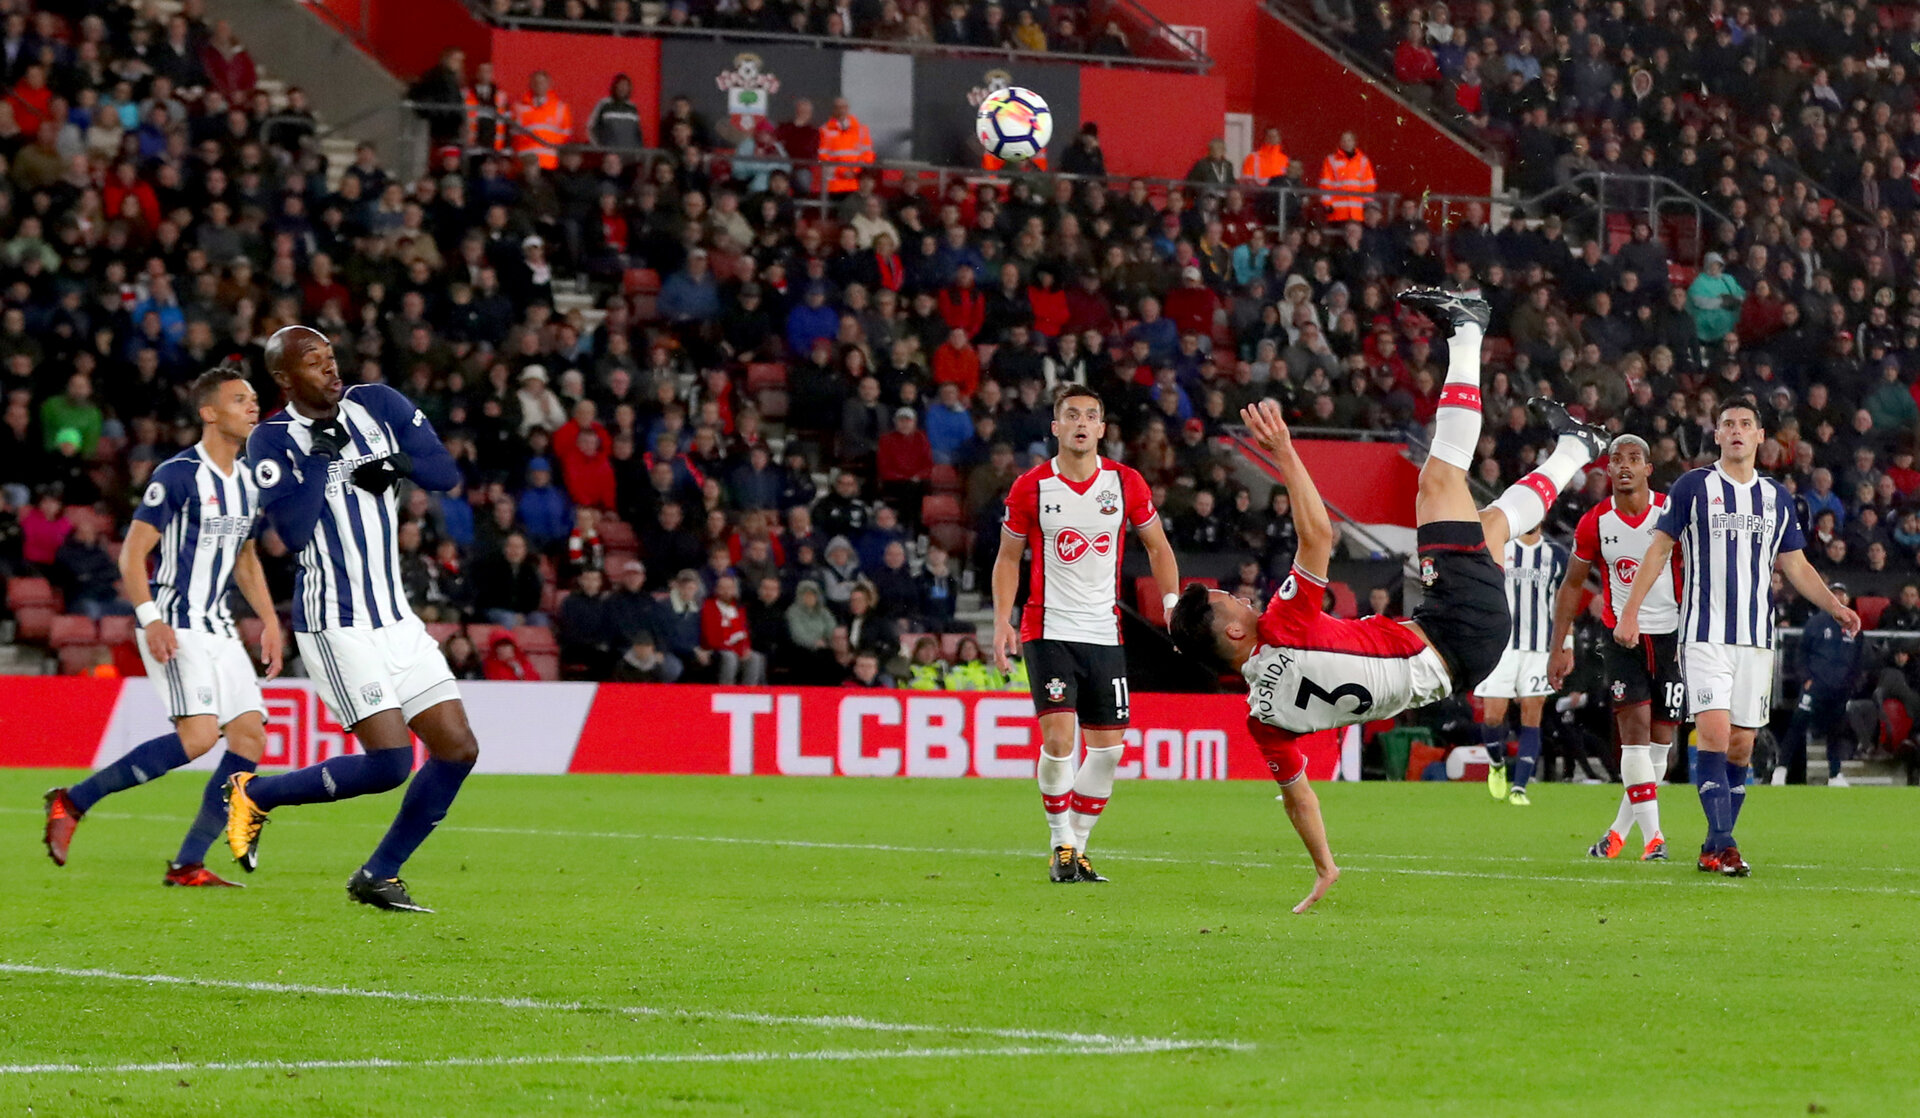 SOUTHAMPTON, ENGLAND - OCTOBER 21: Southampton's Maya Yoshida attempts an over head kick during the Premier League match between Southampton and West Bromwich Albion at St Mary's Stadium on October 21, 2017 in Southampton, England. (Photo by Matt Watson/Southampton FC via Getty Images)